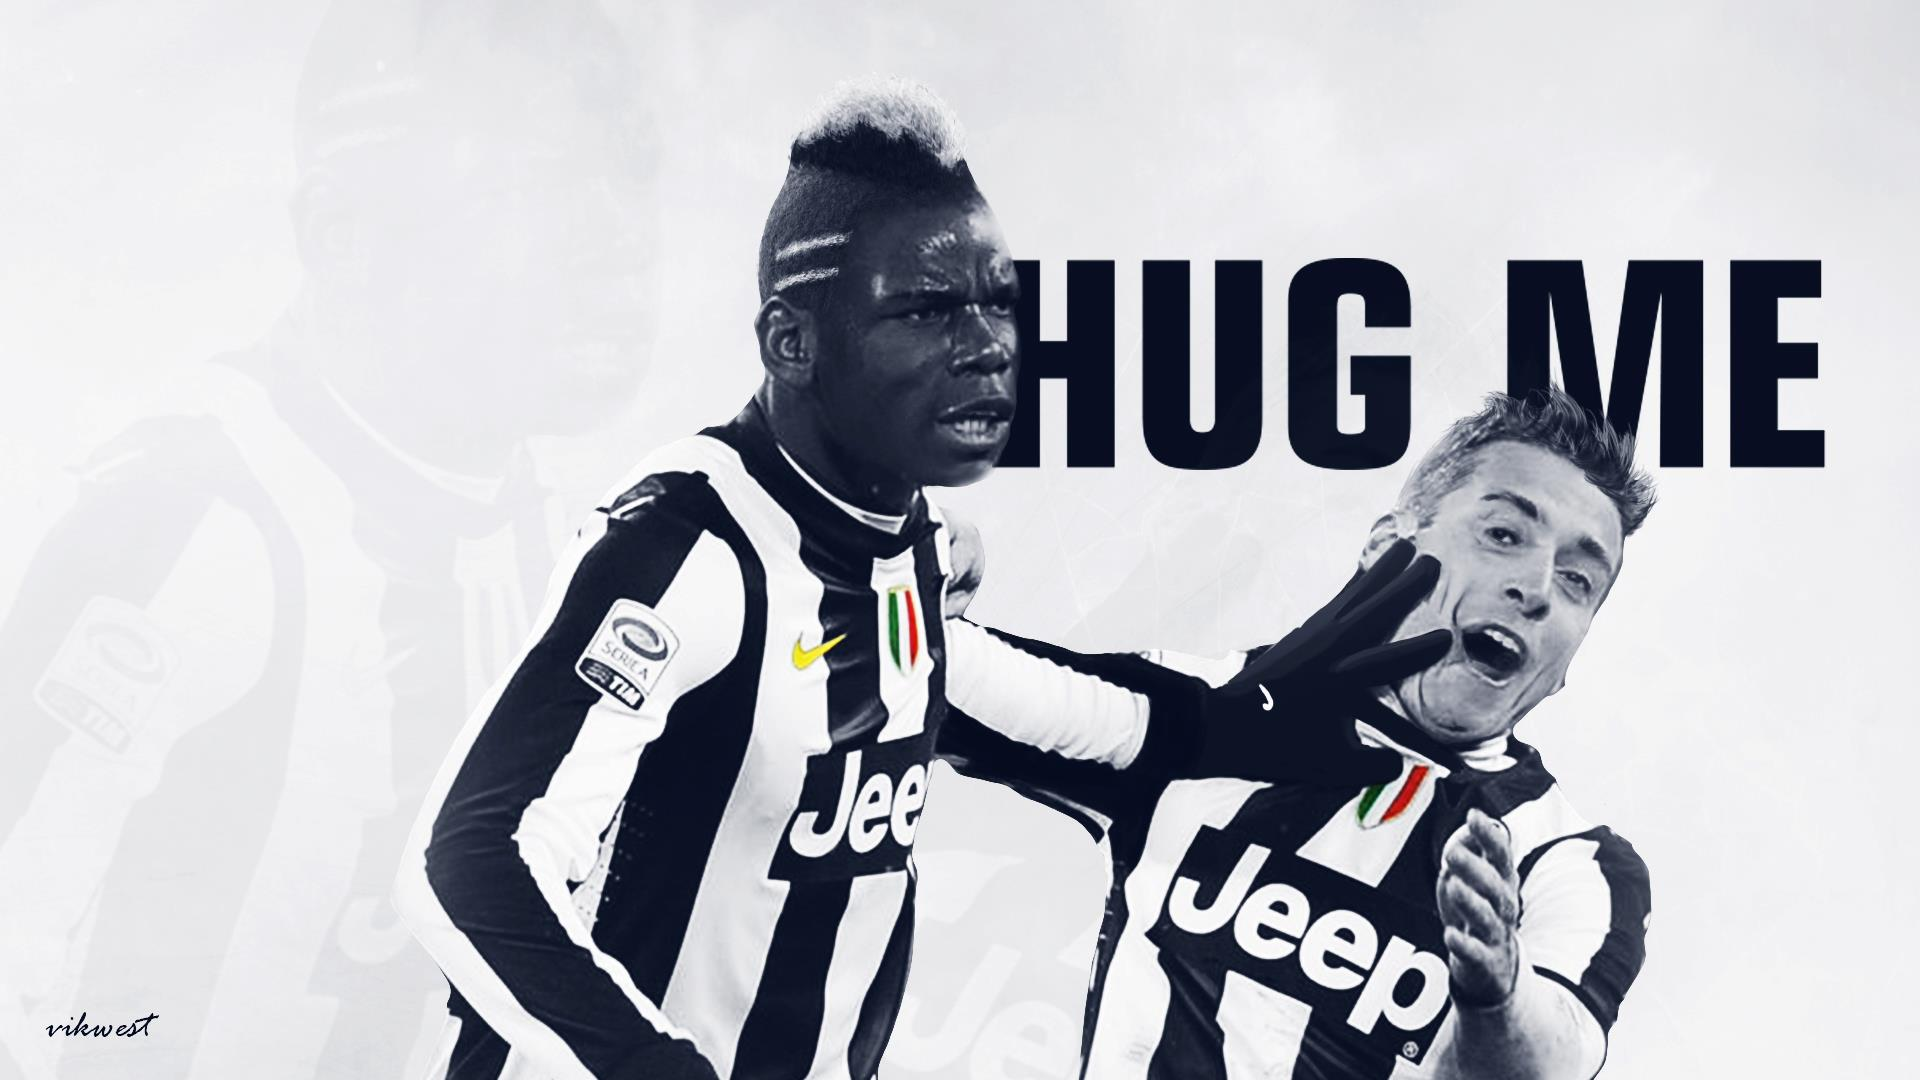 Pogba Wallpapers